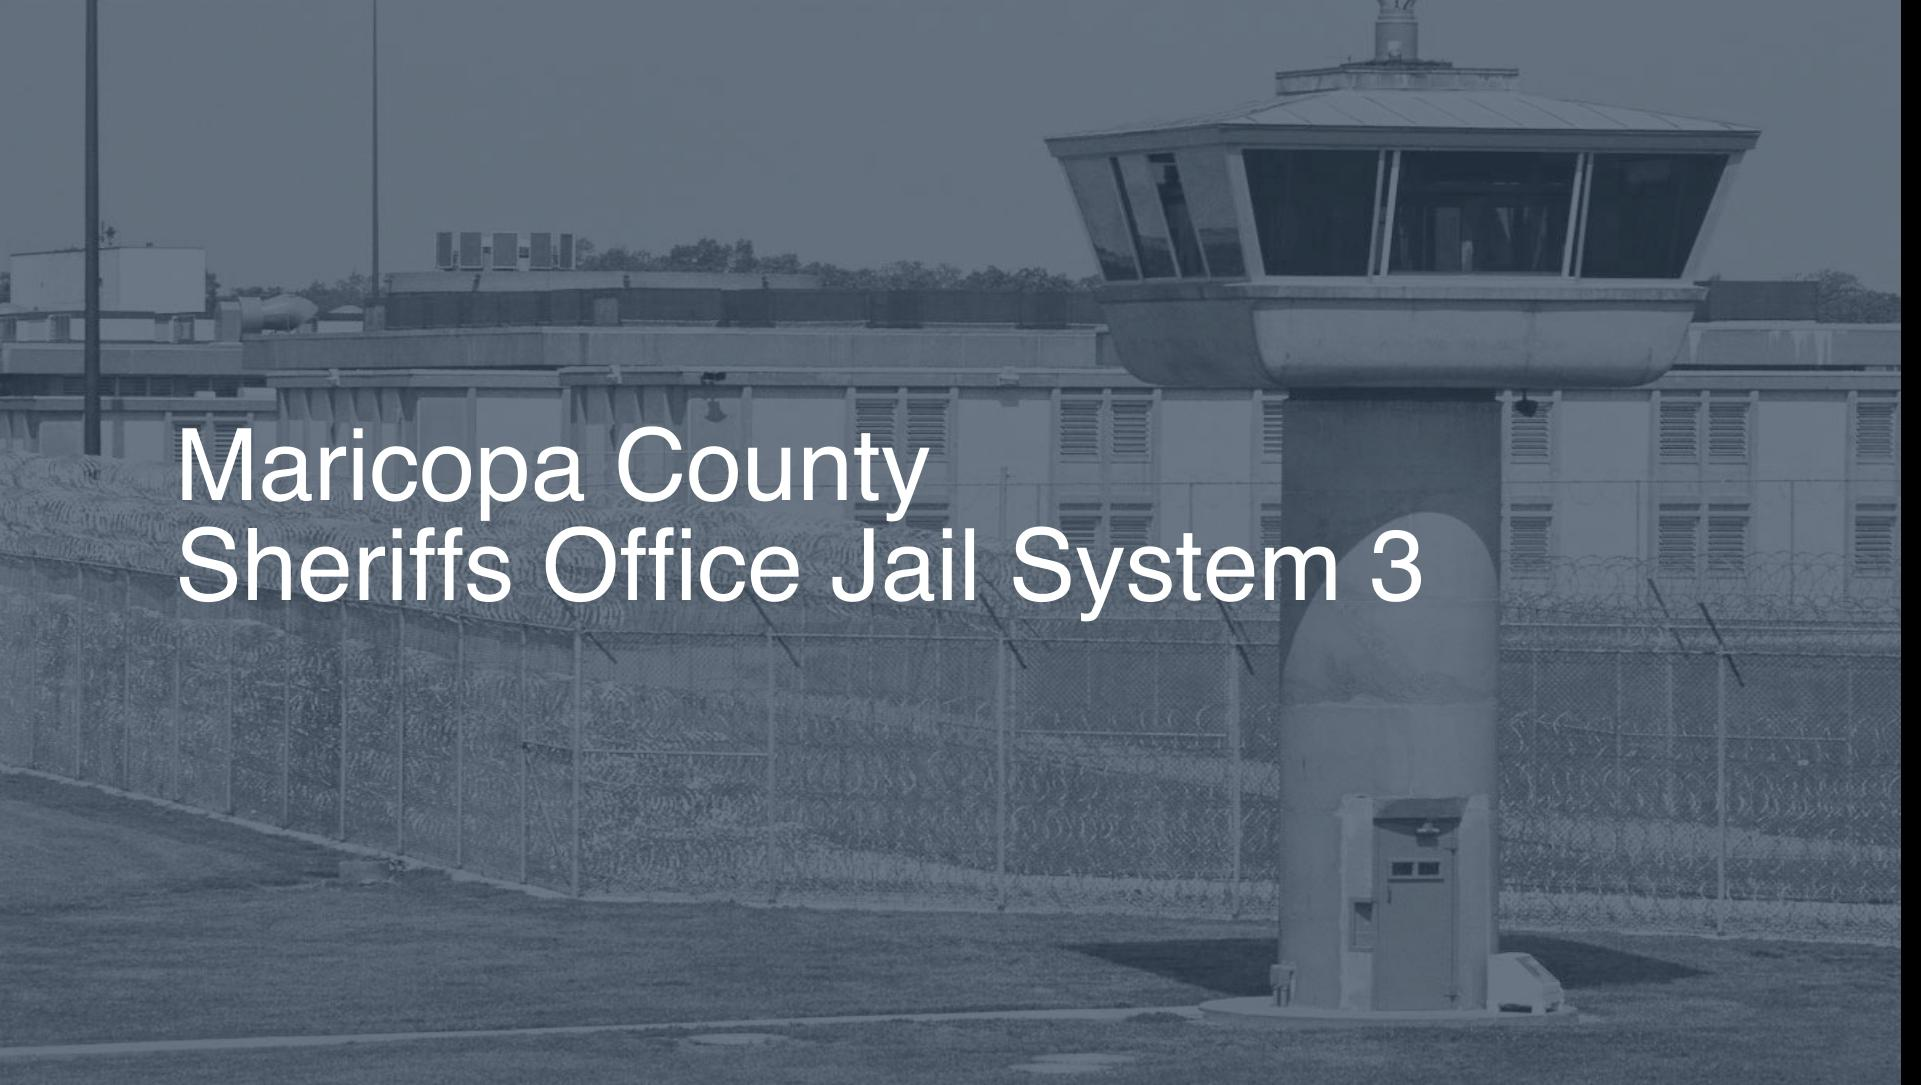 Maricopa County Sheriff's Office Jail System | Pigeonly